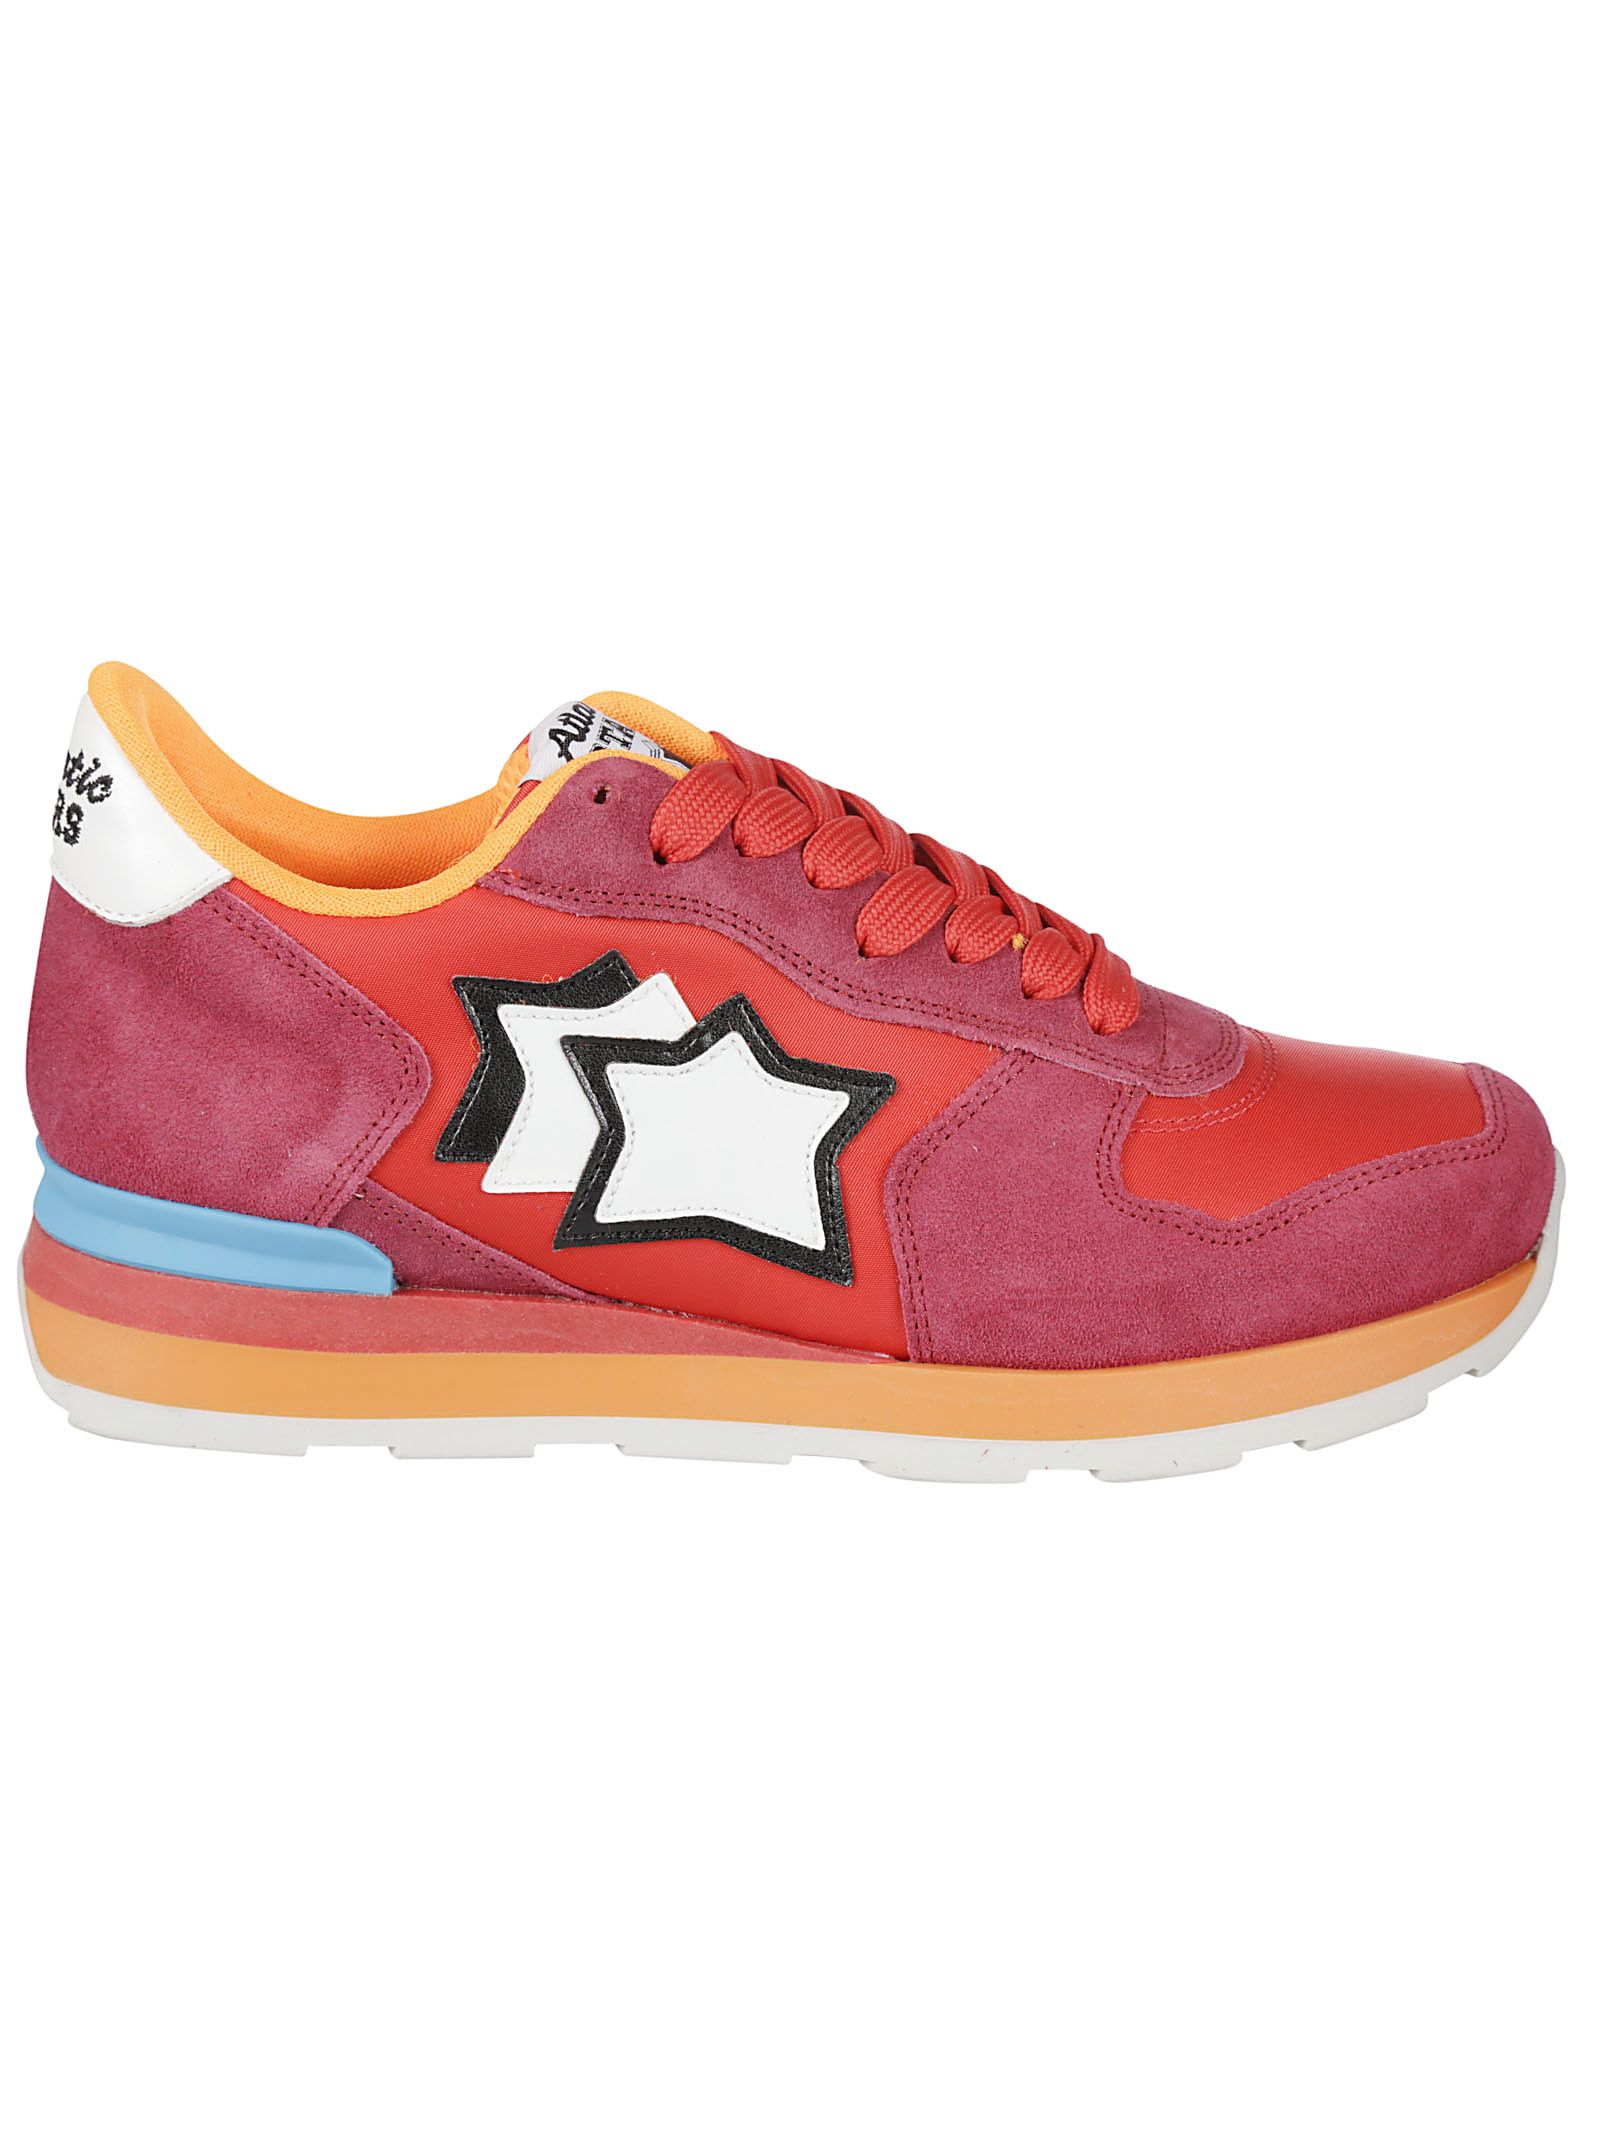 Atlantic Stars Vega Sneaker Cheap Store Discount Clearance Buy Cheap Price Hot Sale Cheap Price 3PvEn7l2gK